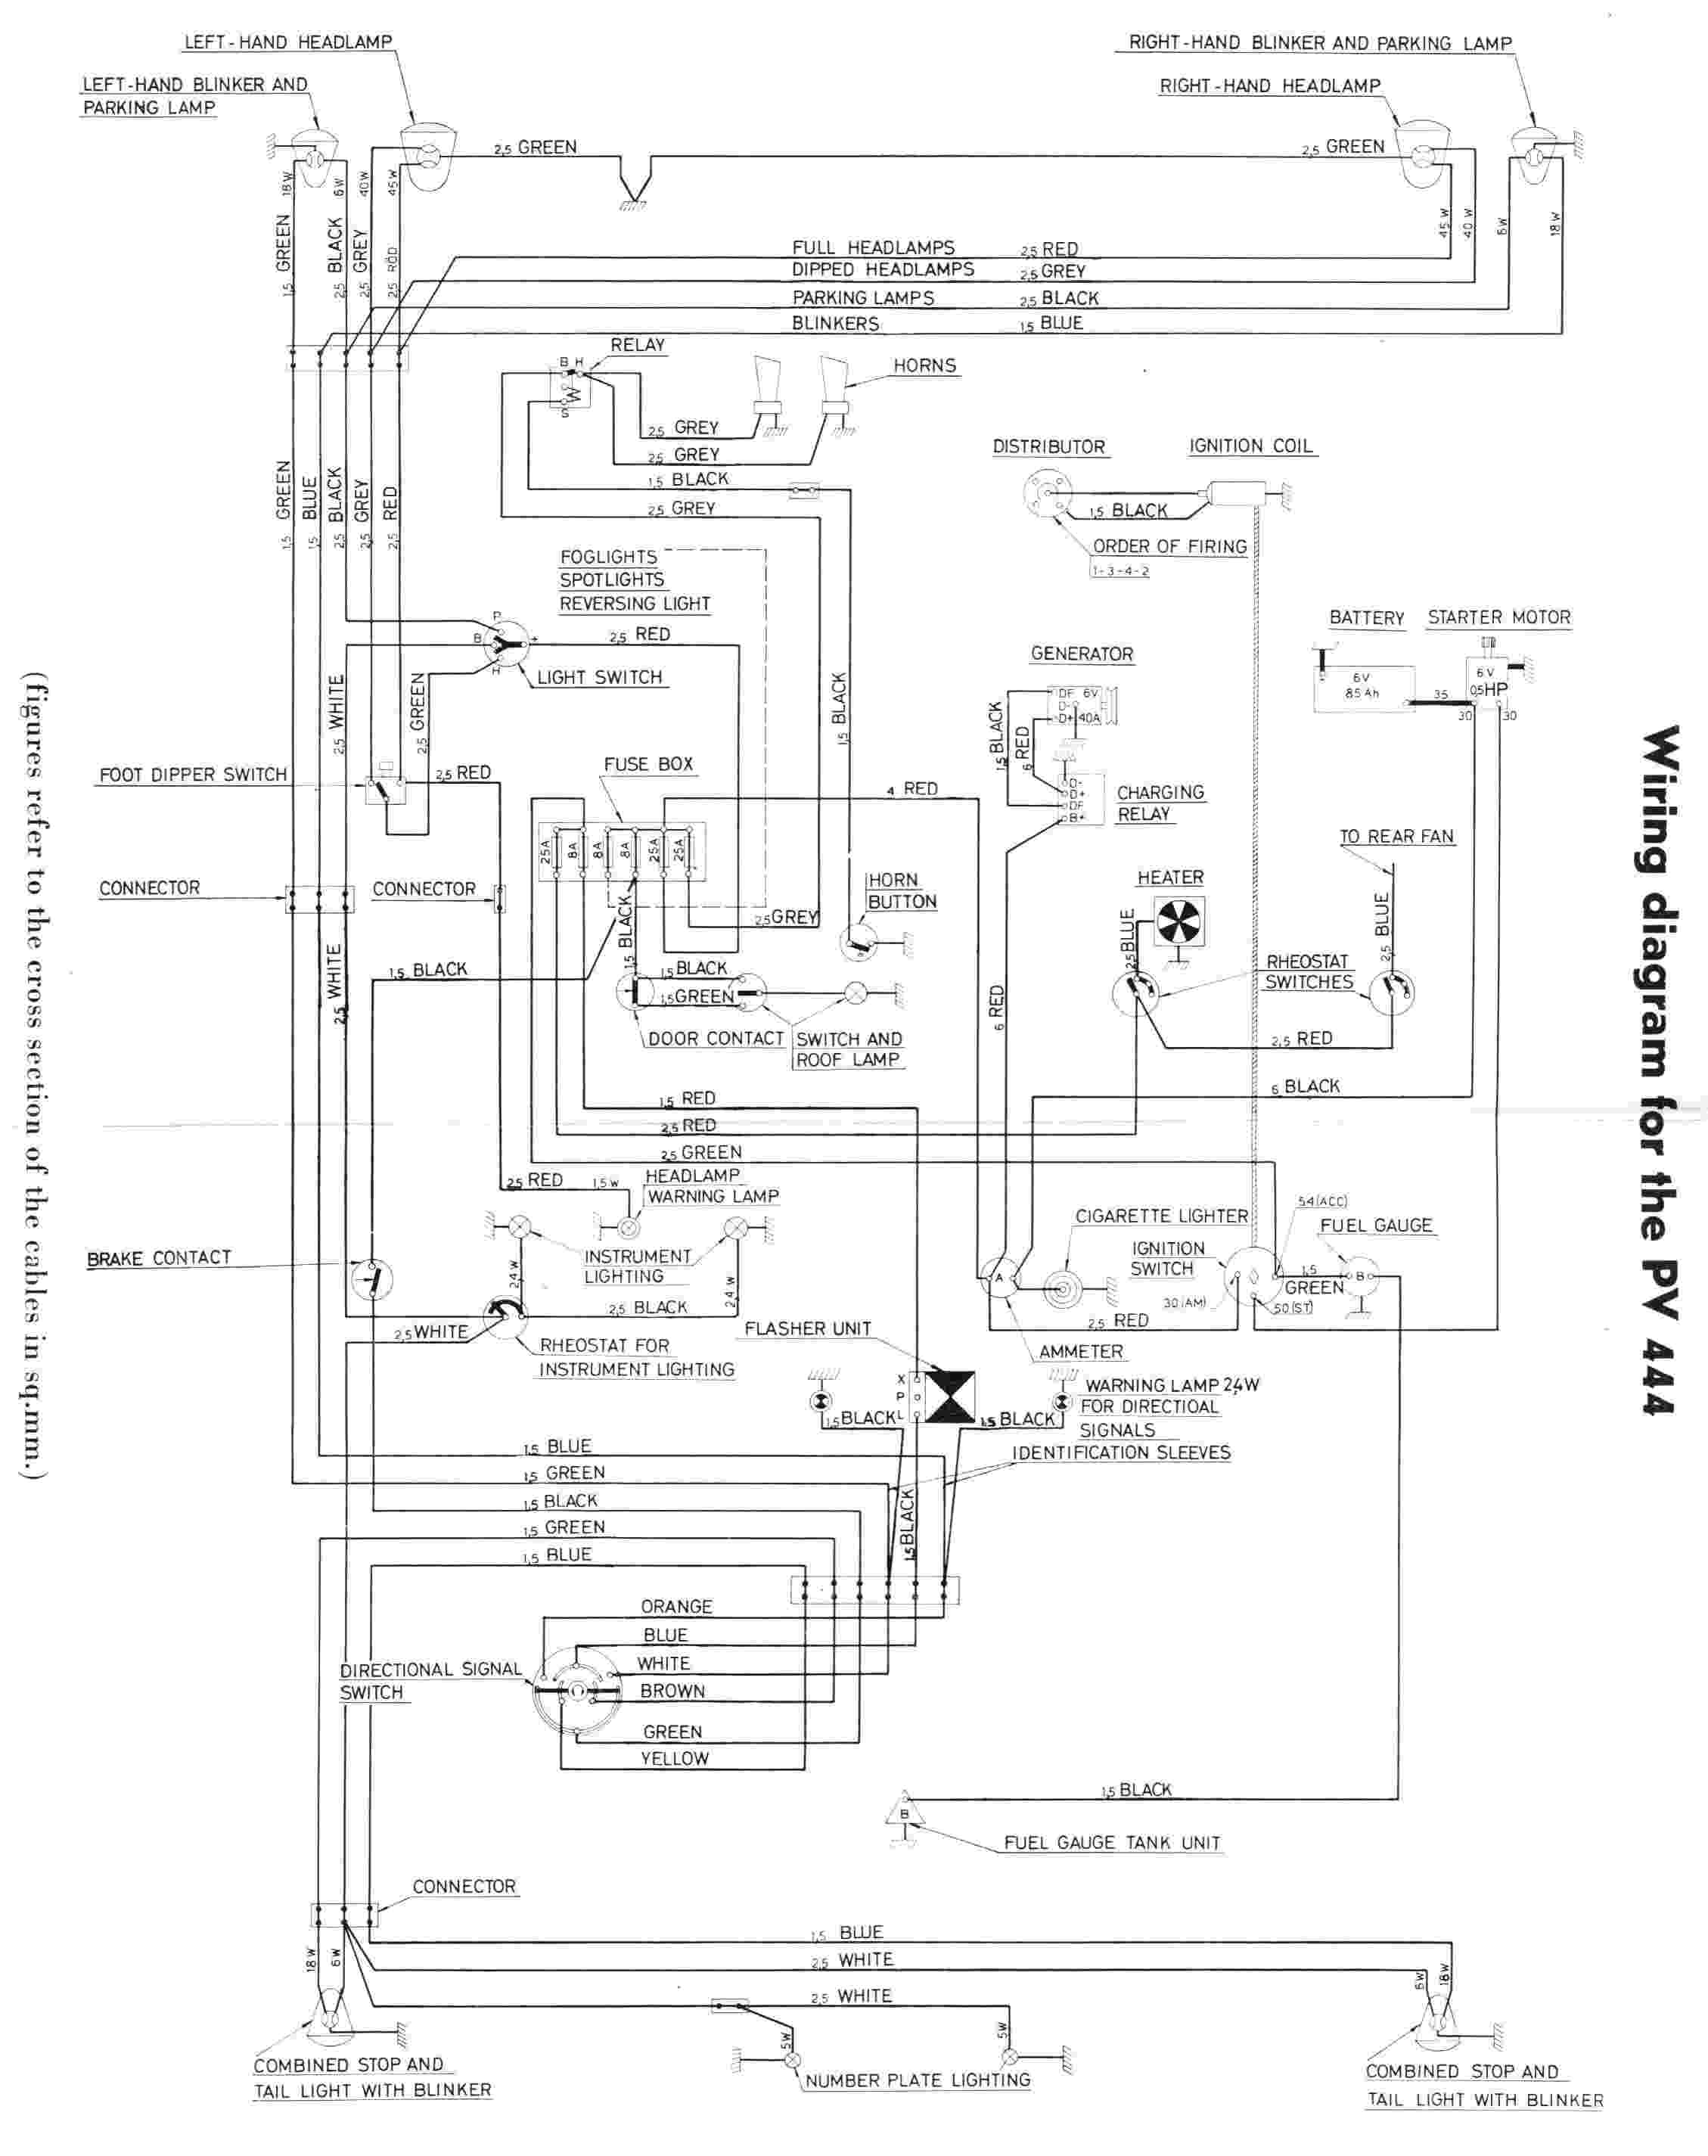 Dorable citroen relay wiring diagram motif wiring diagram ideas unique citroen xsara picasso wiring diagram pattern best images asfbconference2016 Gallery